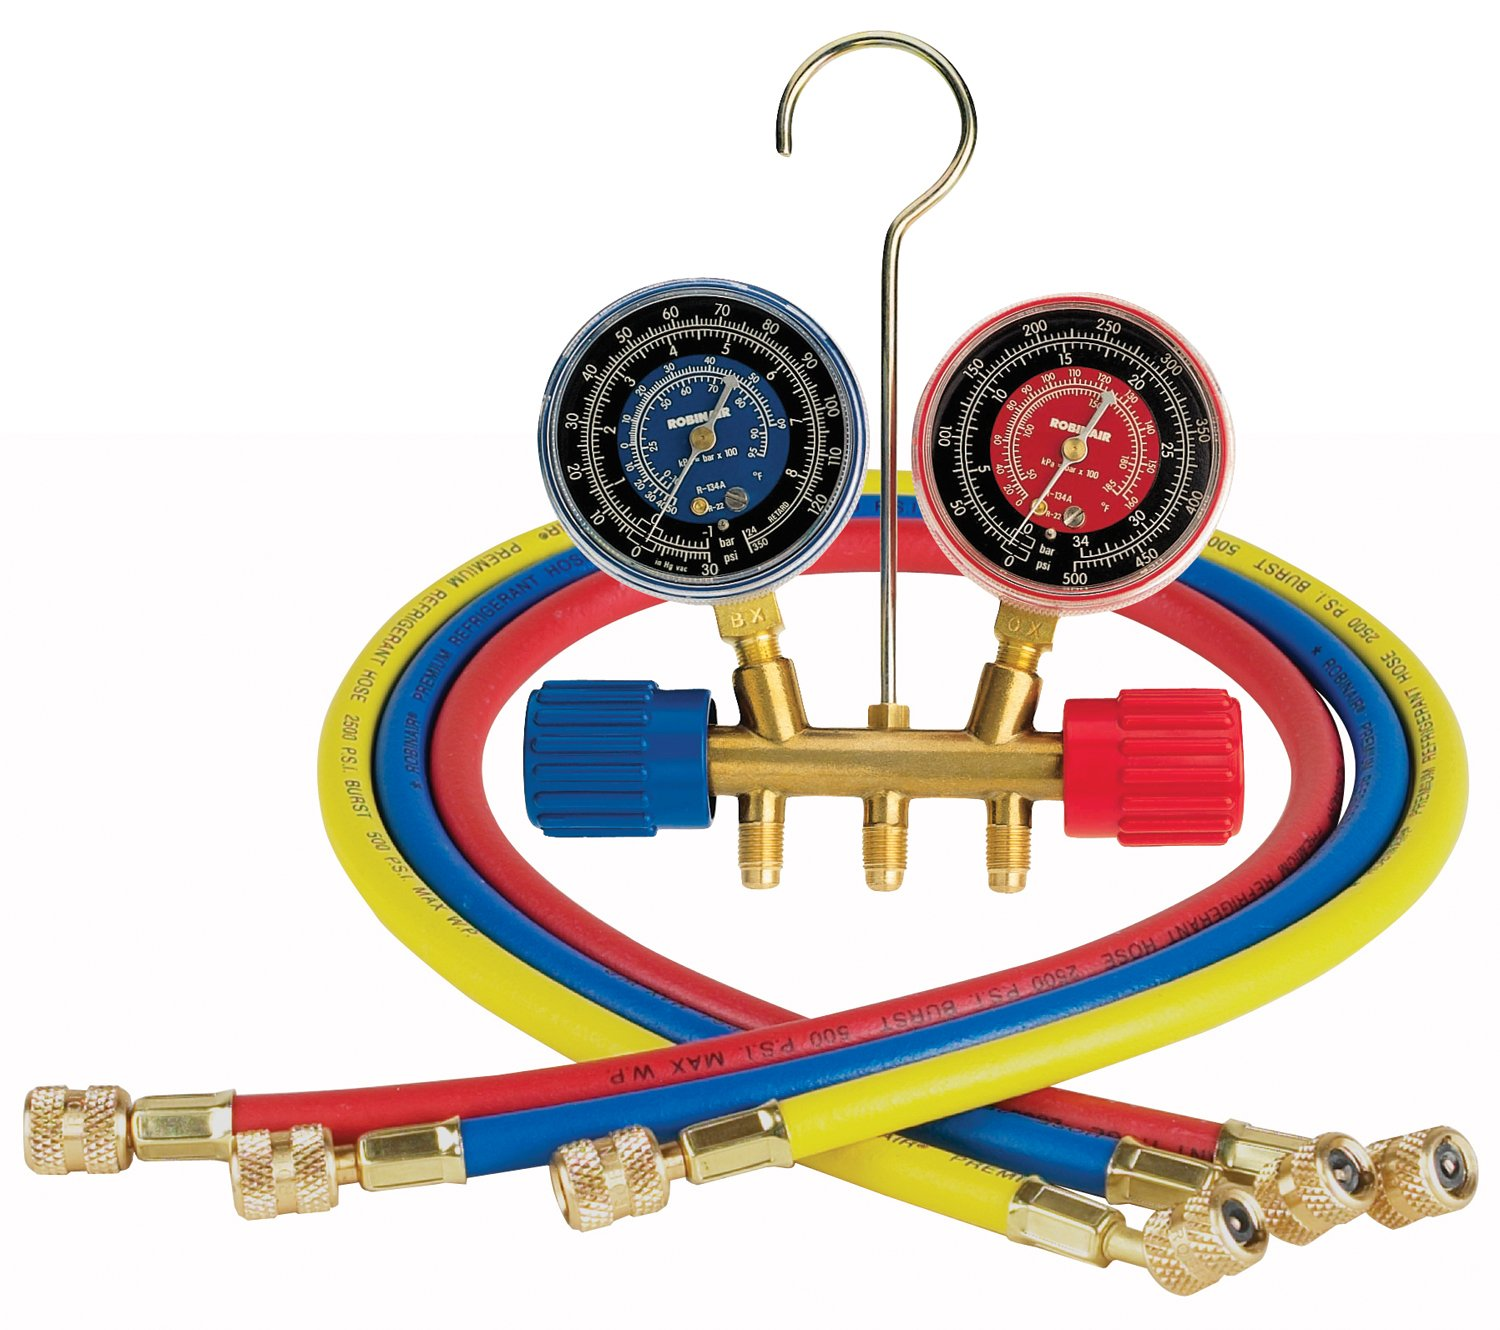 Robinair 40153 Side-Wheel Manifold Gauge with 1/4' Fittings and 36' Hose Set